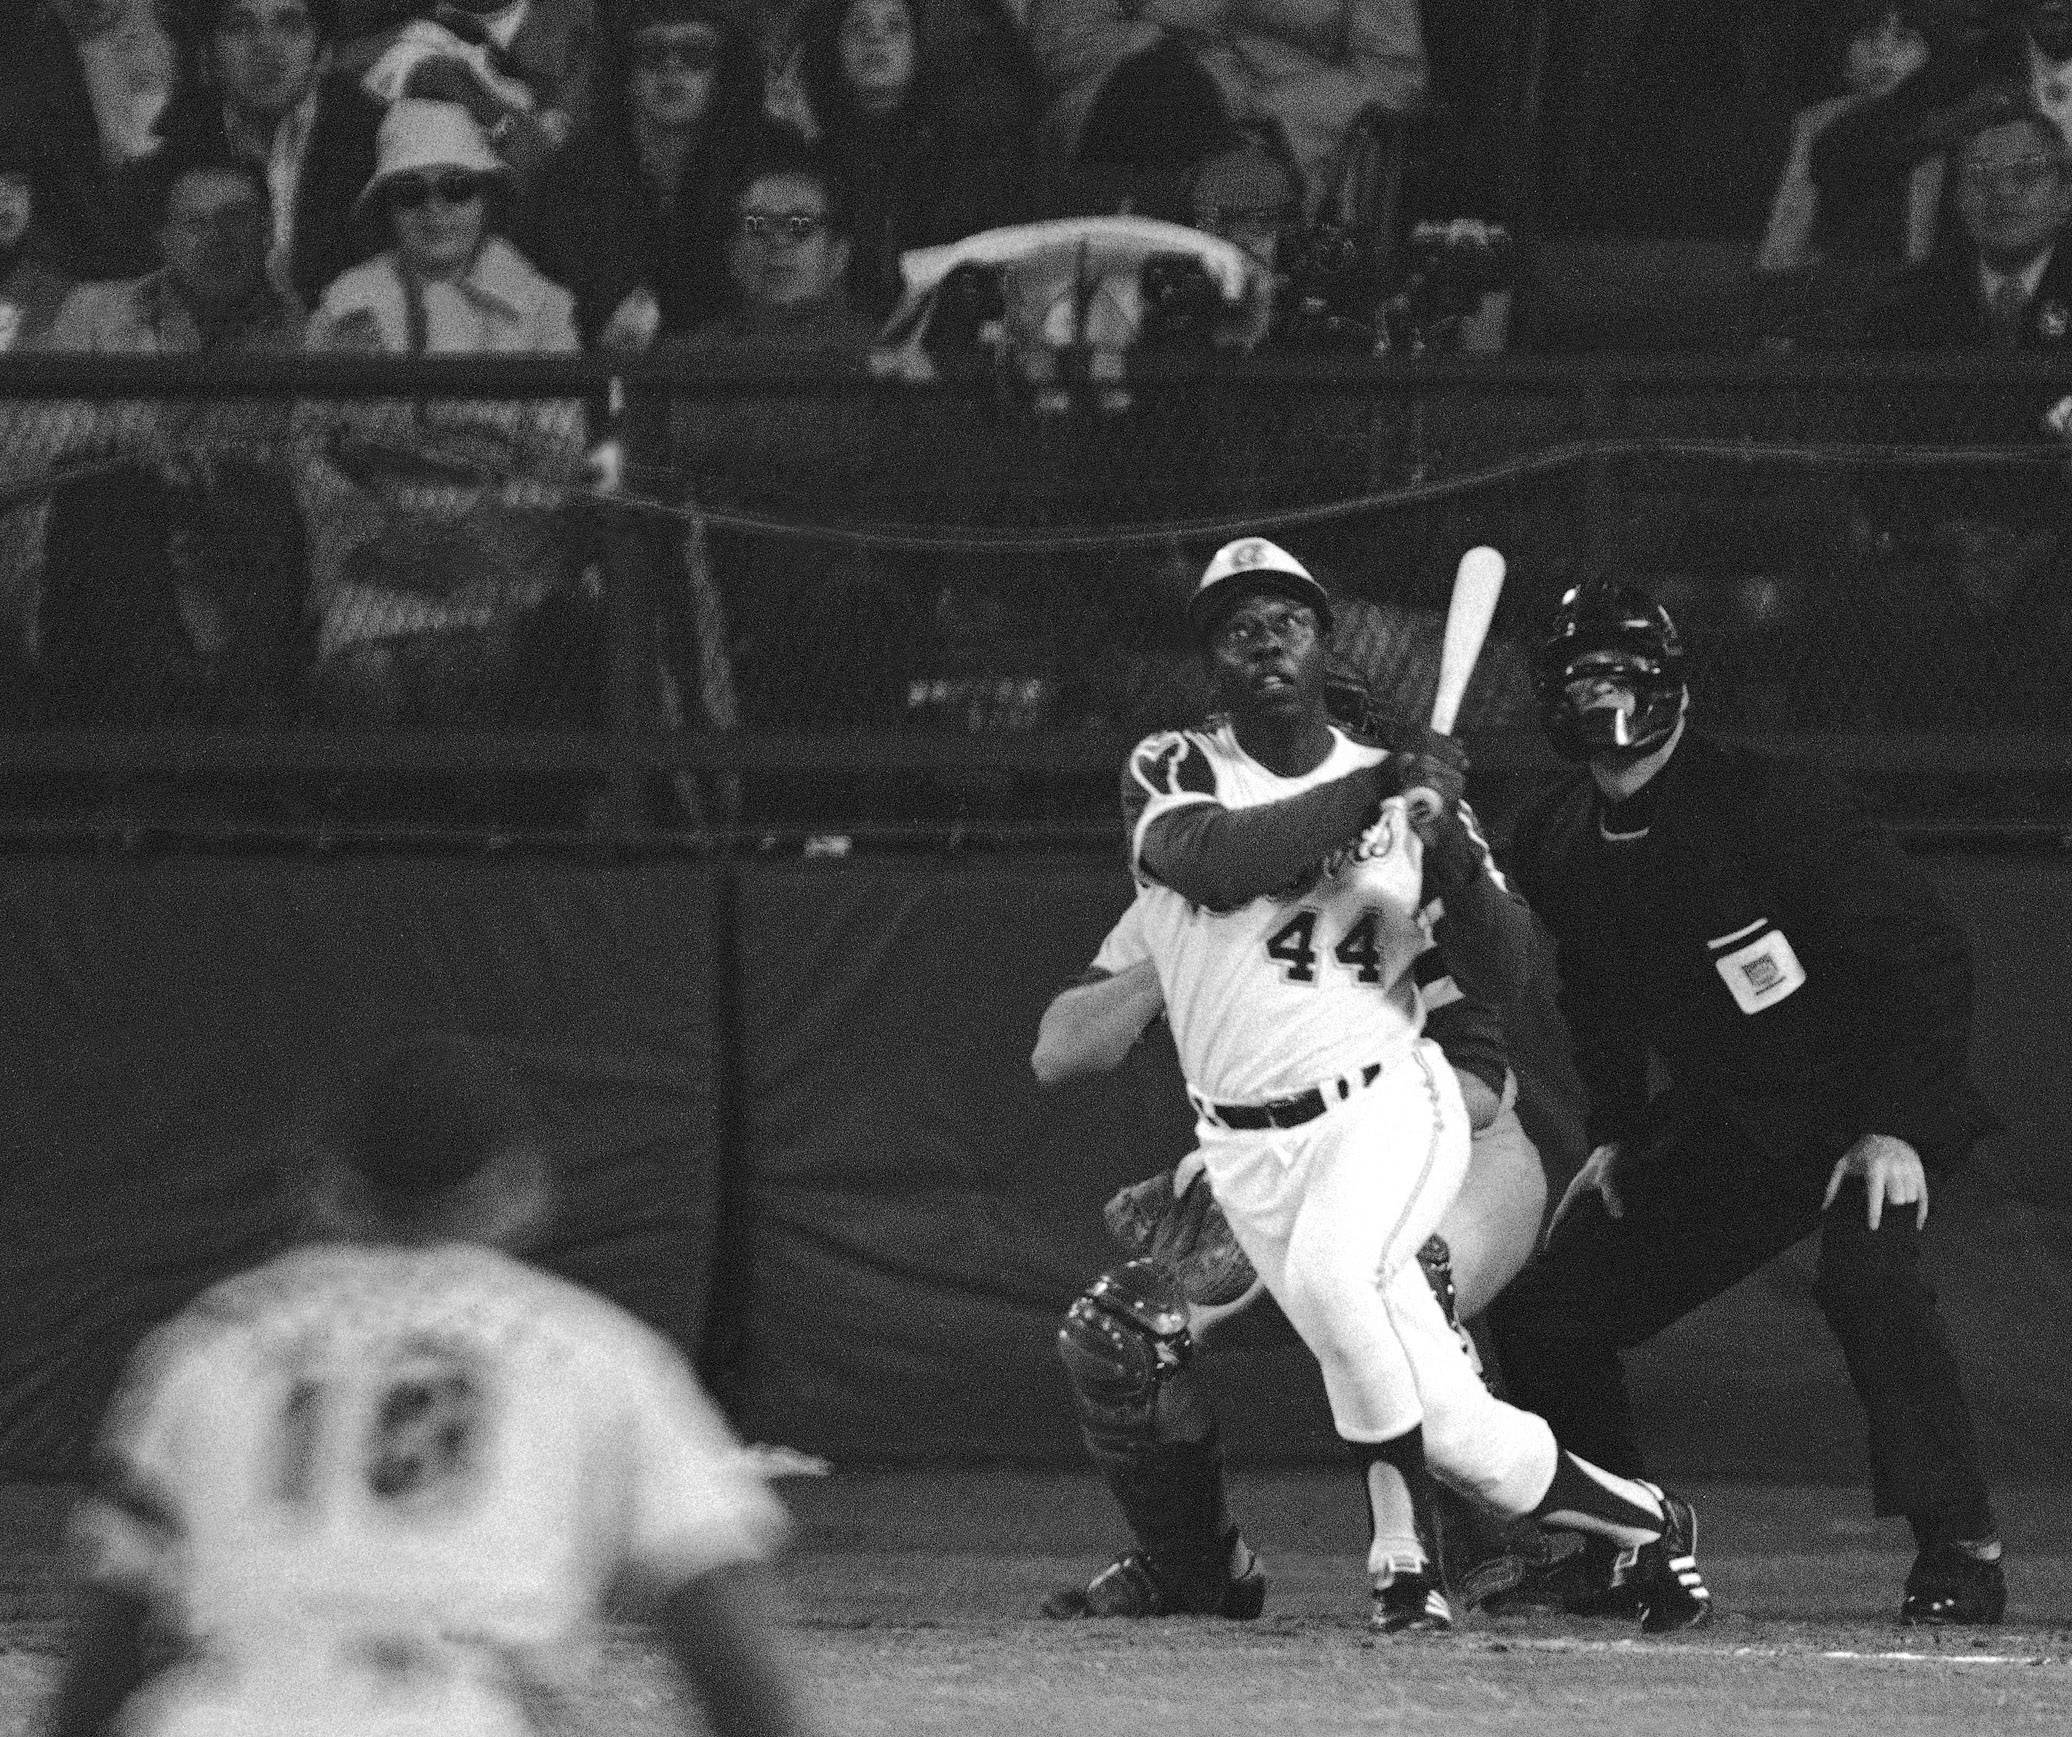 In this April 8, 1974 file photo, Atlanta Braves' Hank Aaron eyes the flight of the ball after hitting his 715th career homer in a game against the Los Angeles Dodgers in Atlanta.